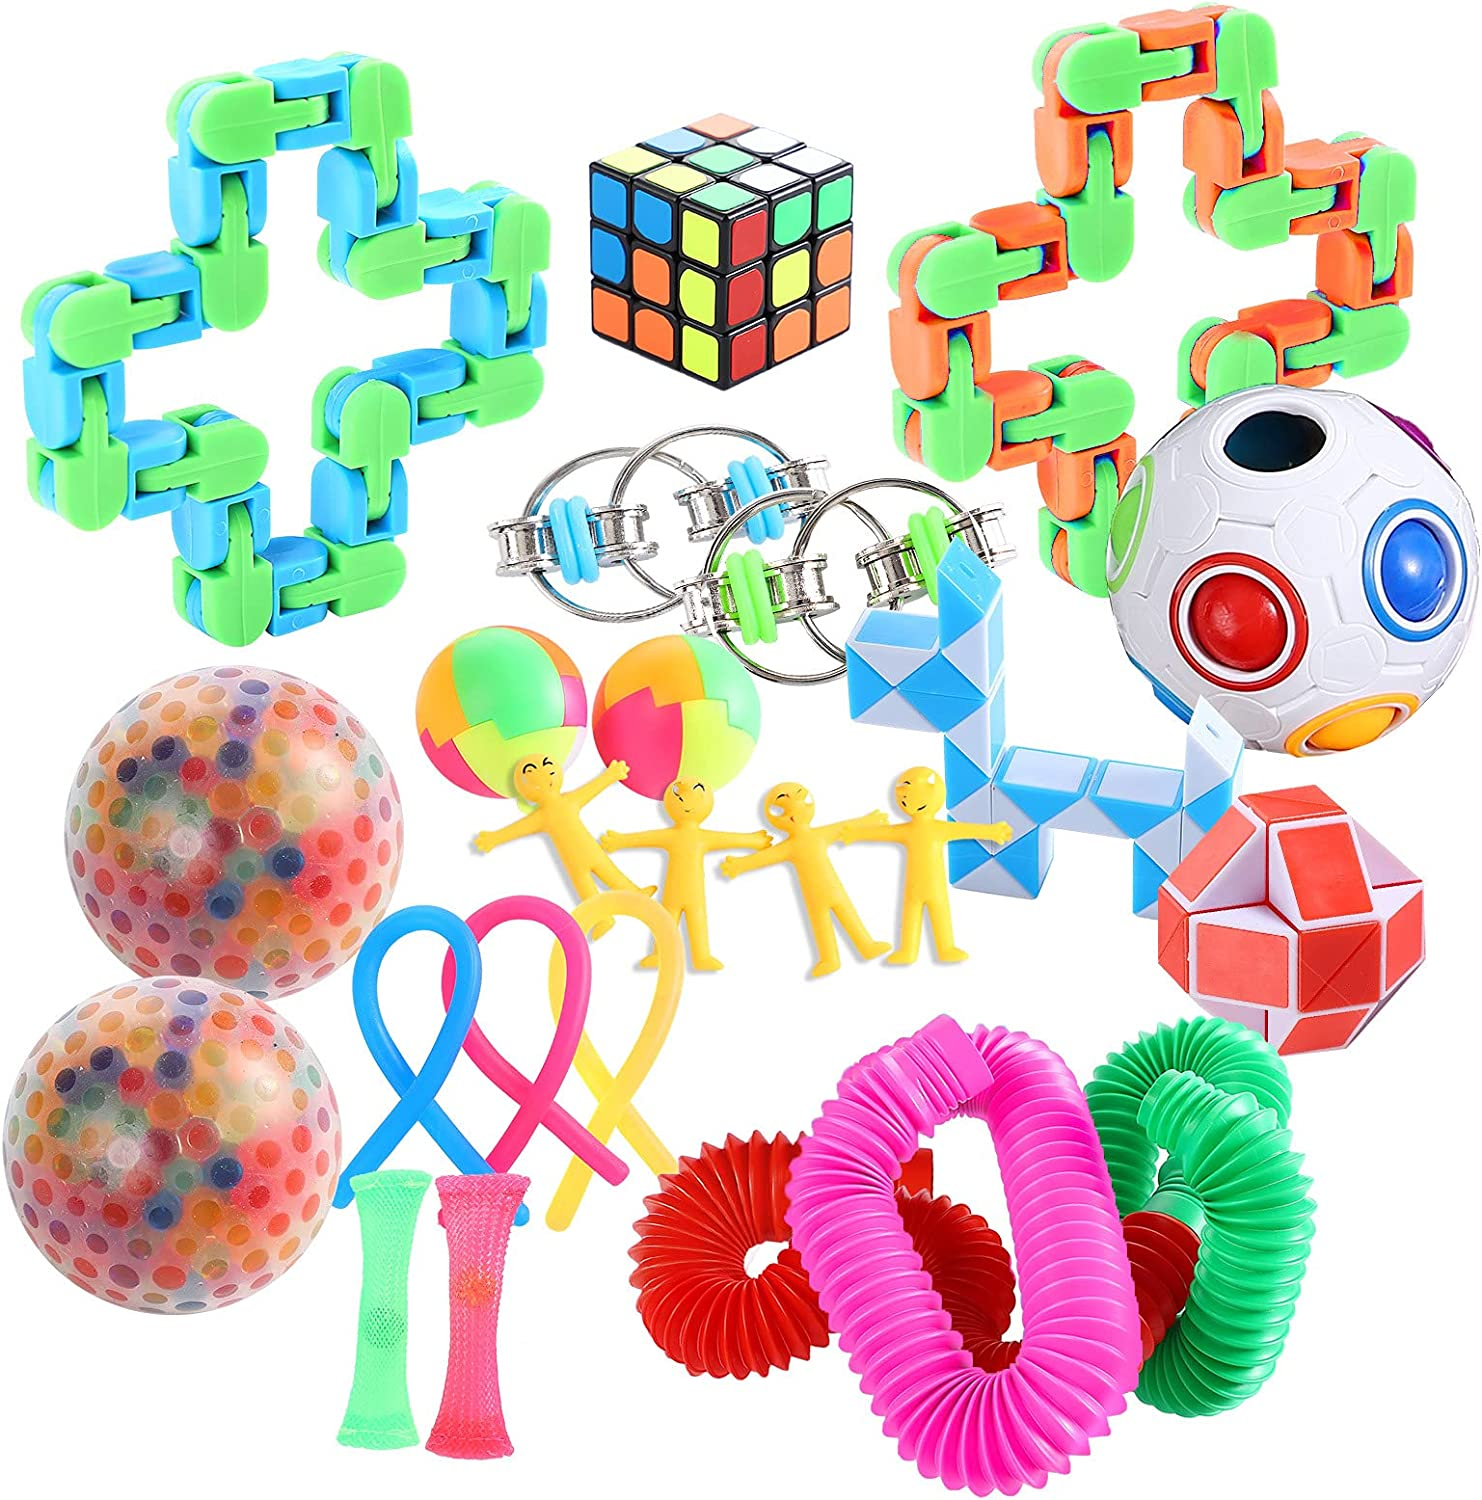 24-Pack Sensory store Fidget High material Toys Set for and Kids Adults Stress Anxie